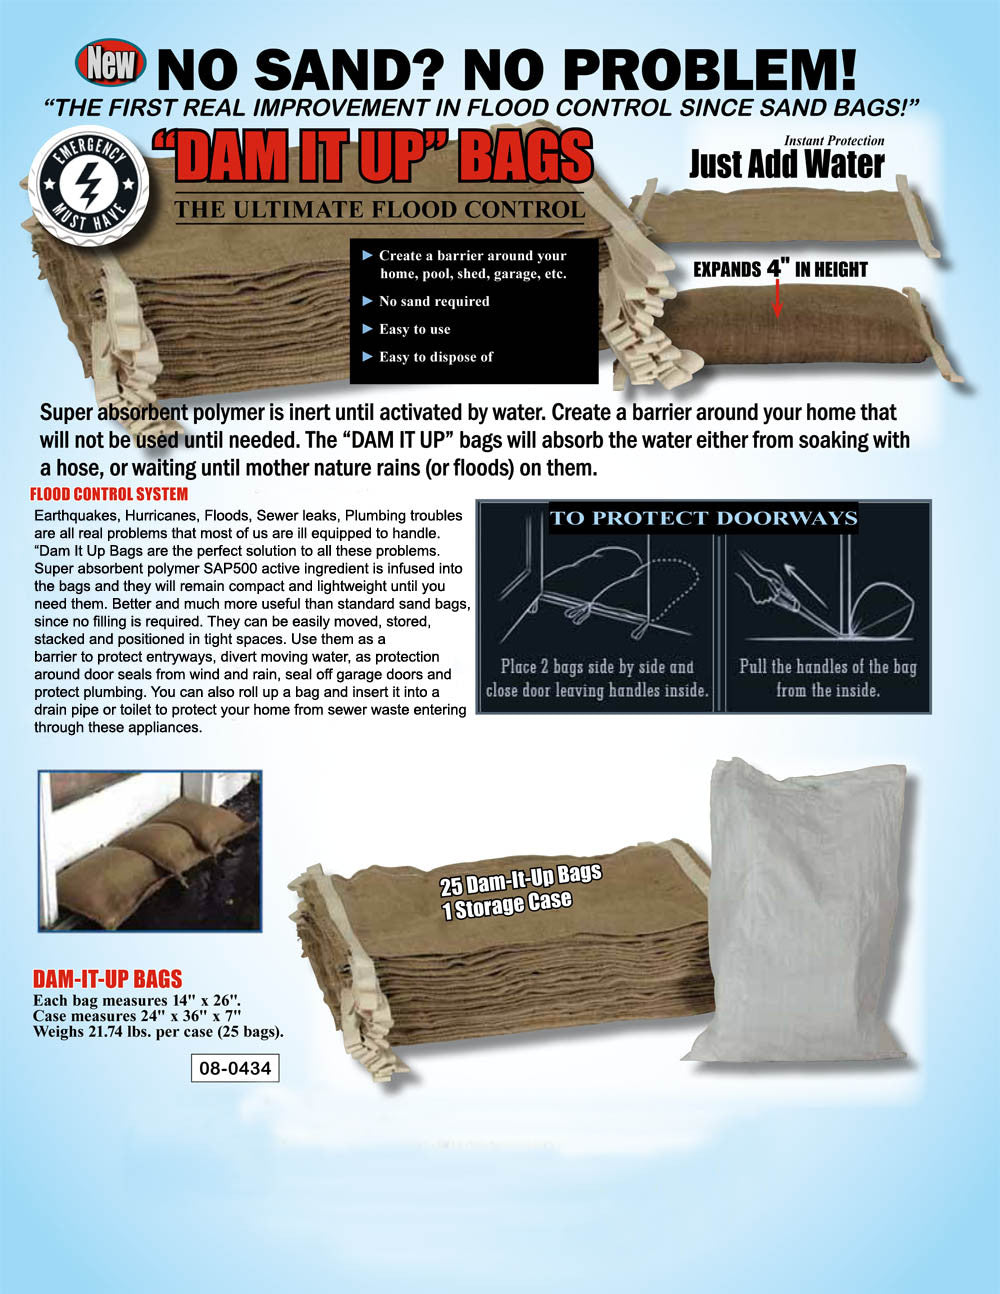 Home Flood Defence Kit - Water Activated Sand Bags